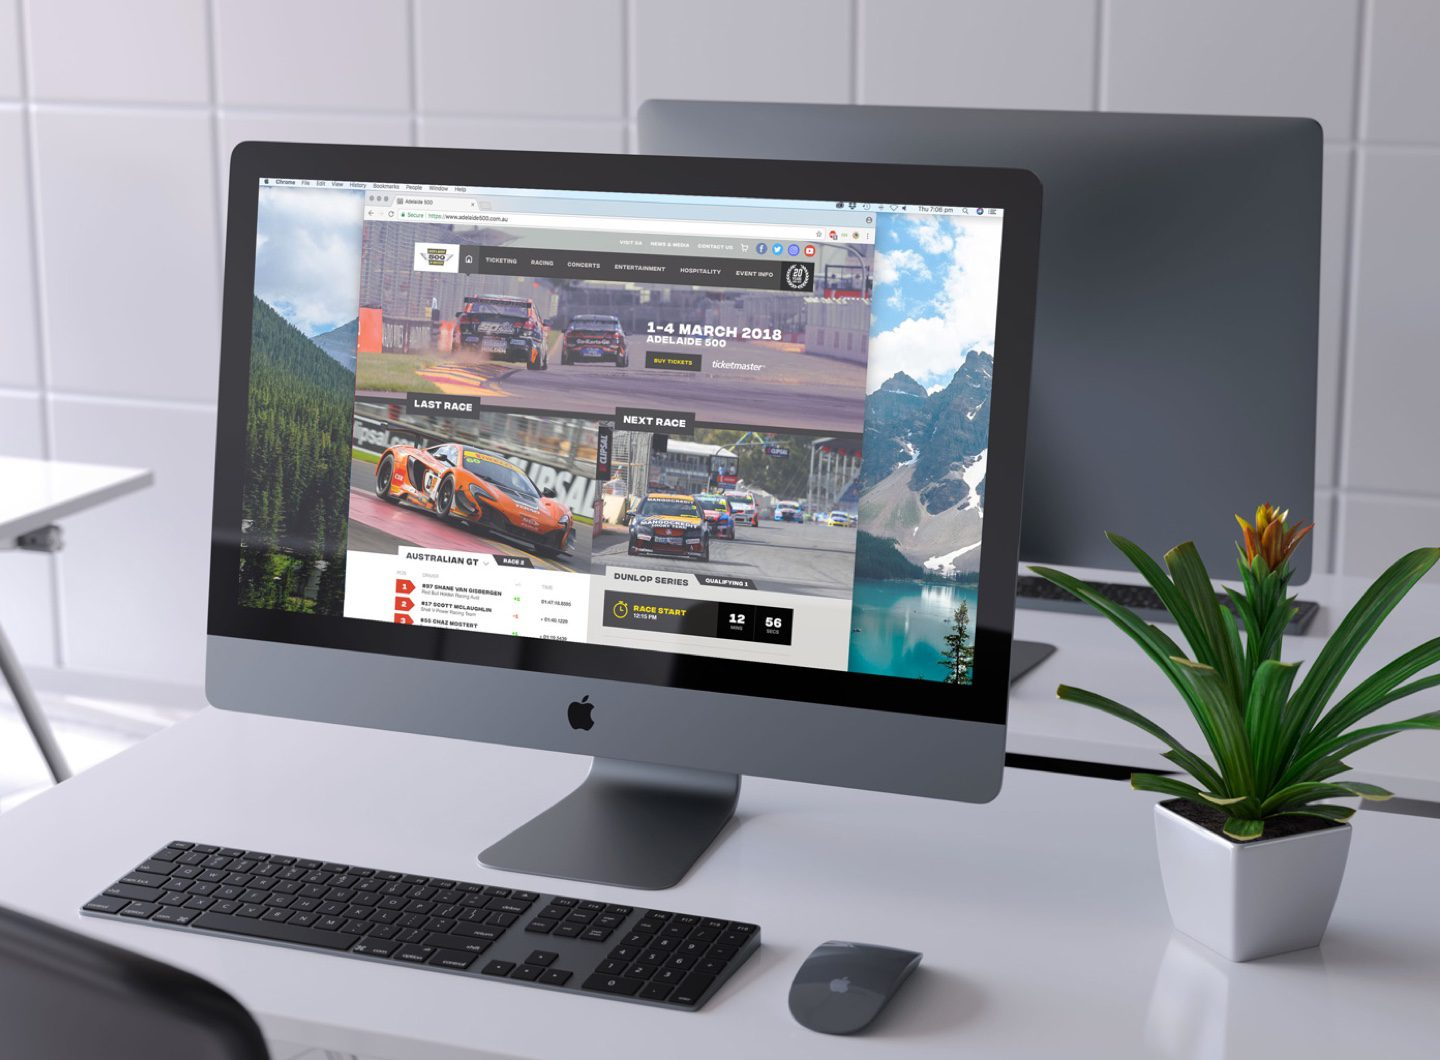 The Adelaide 500 website design displayed on an iMac